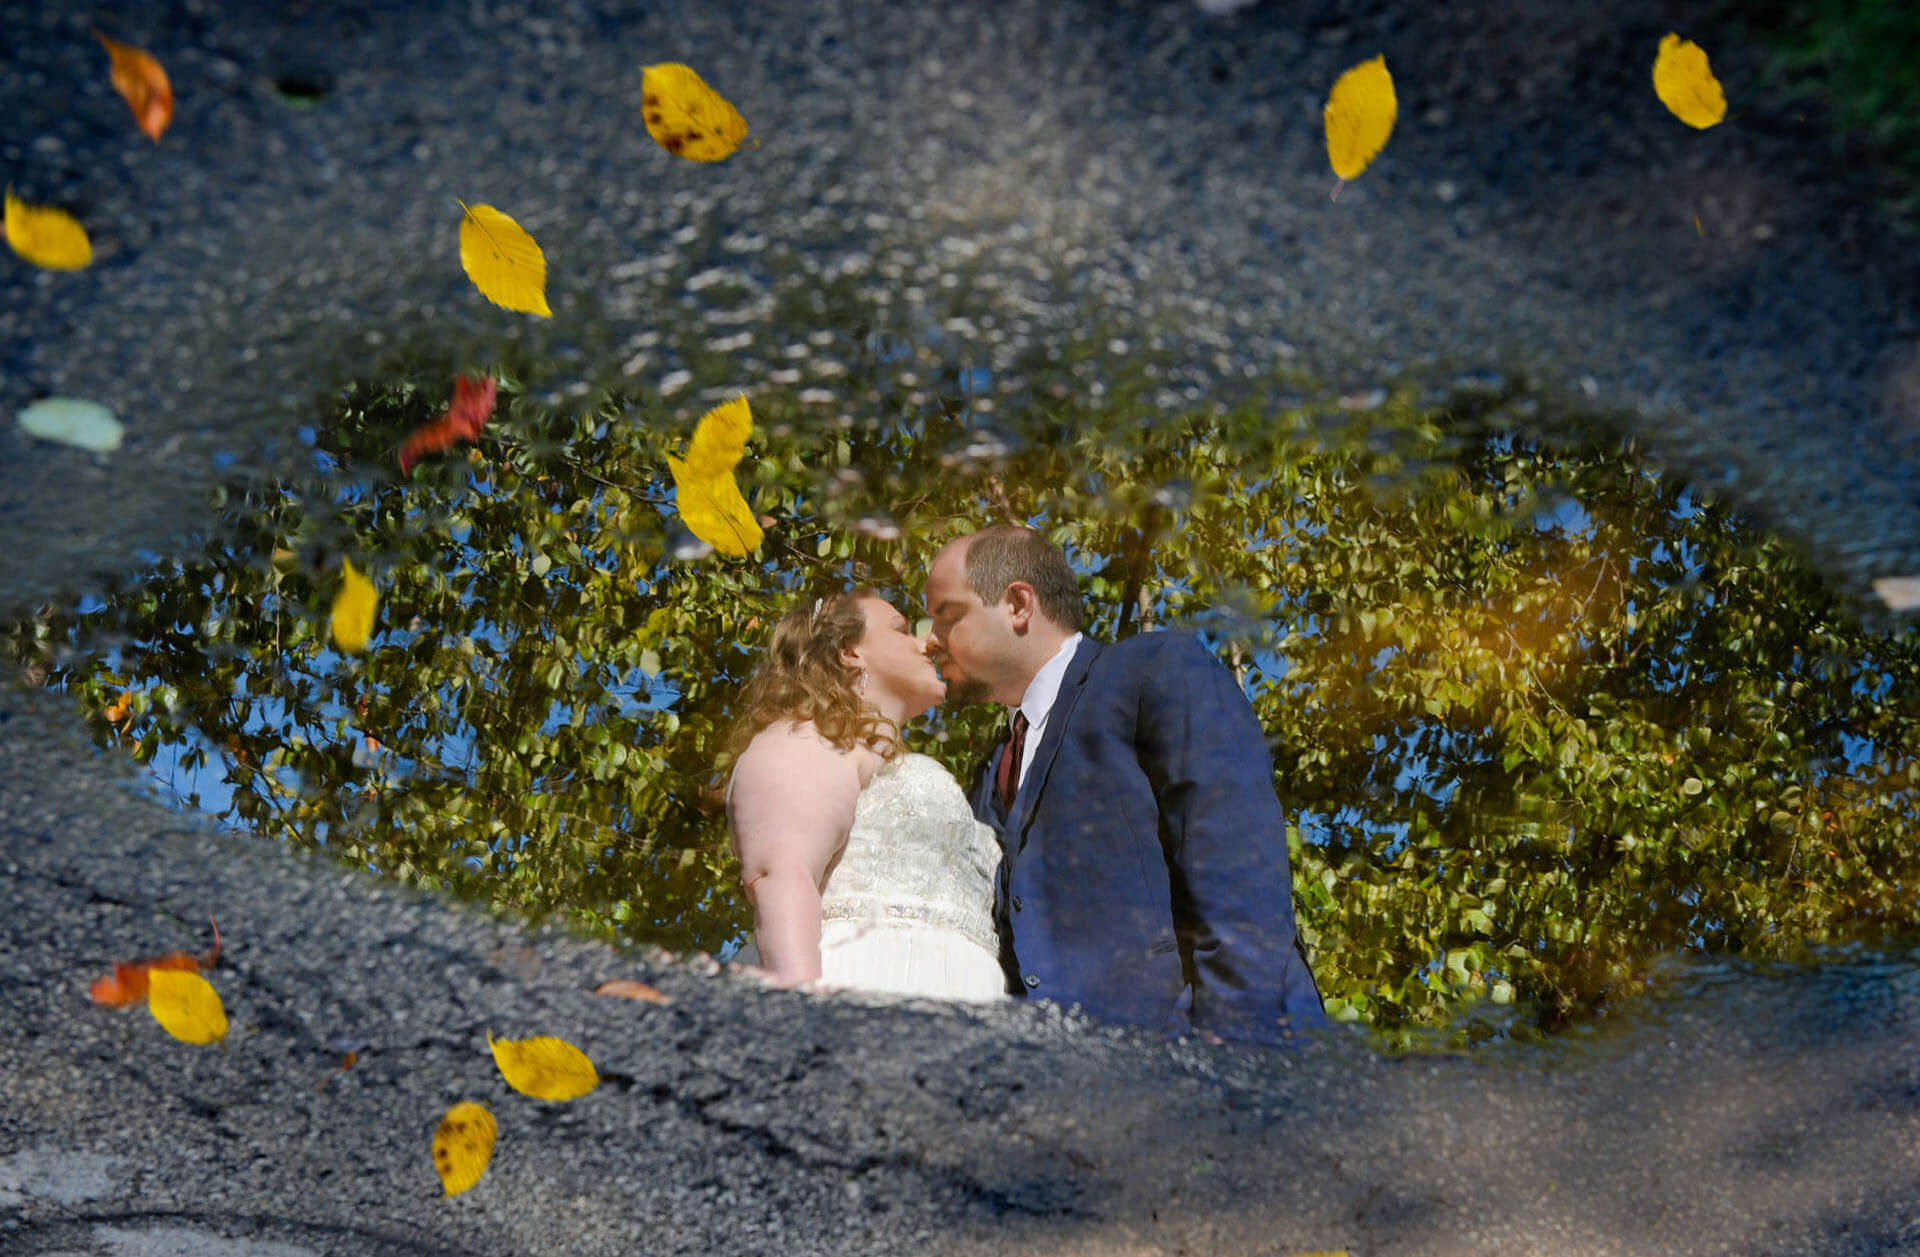 The bride and groom are reflected in a puddle with fall leaves during their wedding reception at the Freighthouse in Ypsilanti, Michigan.